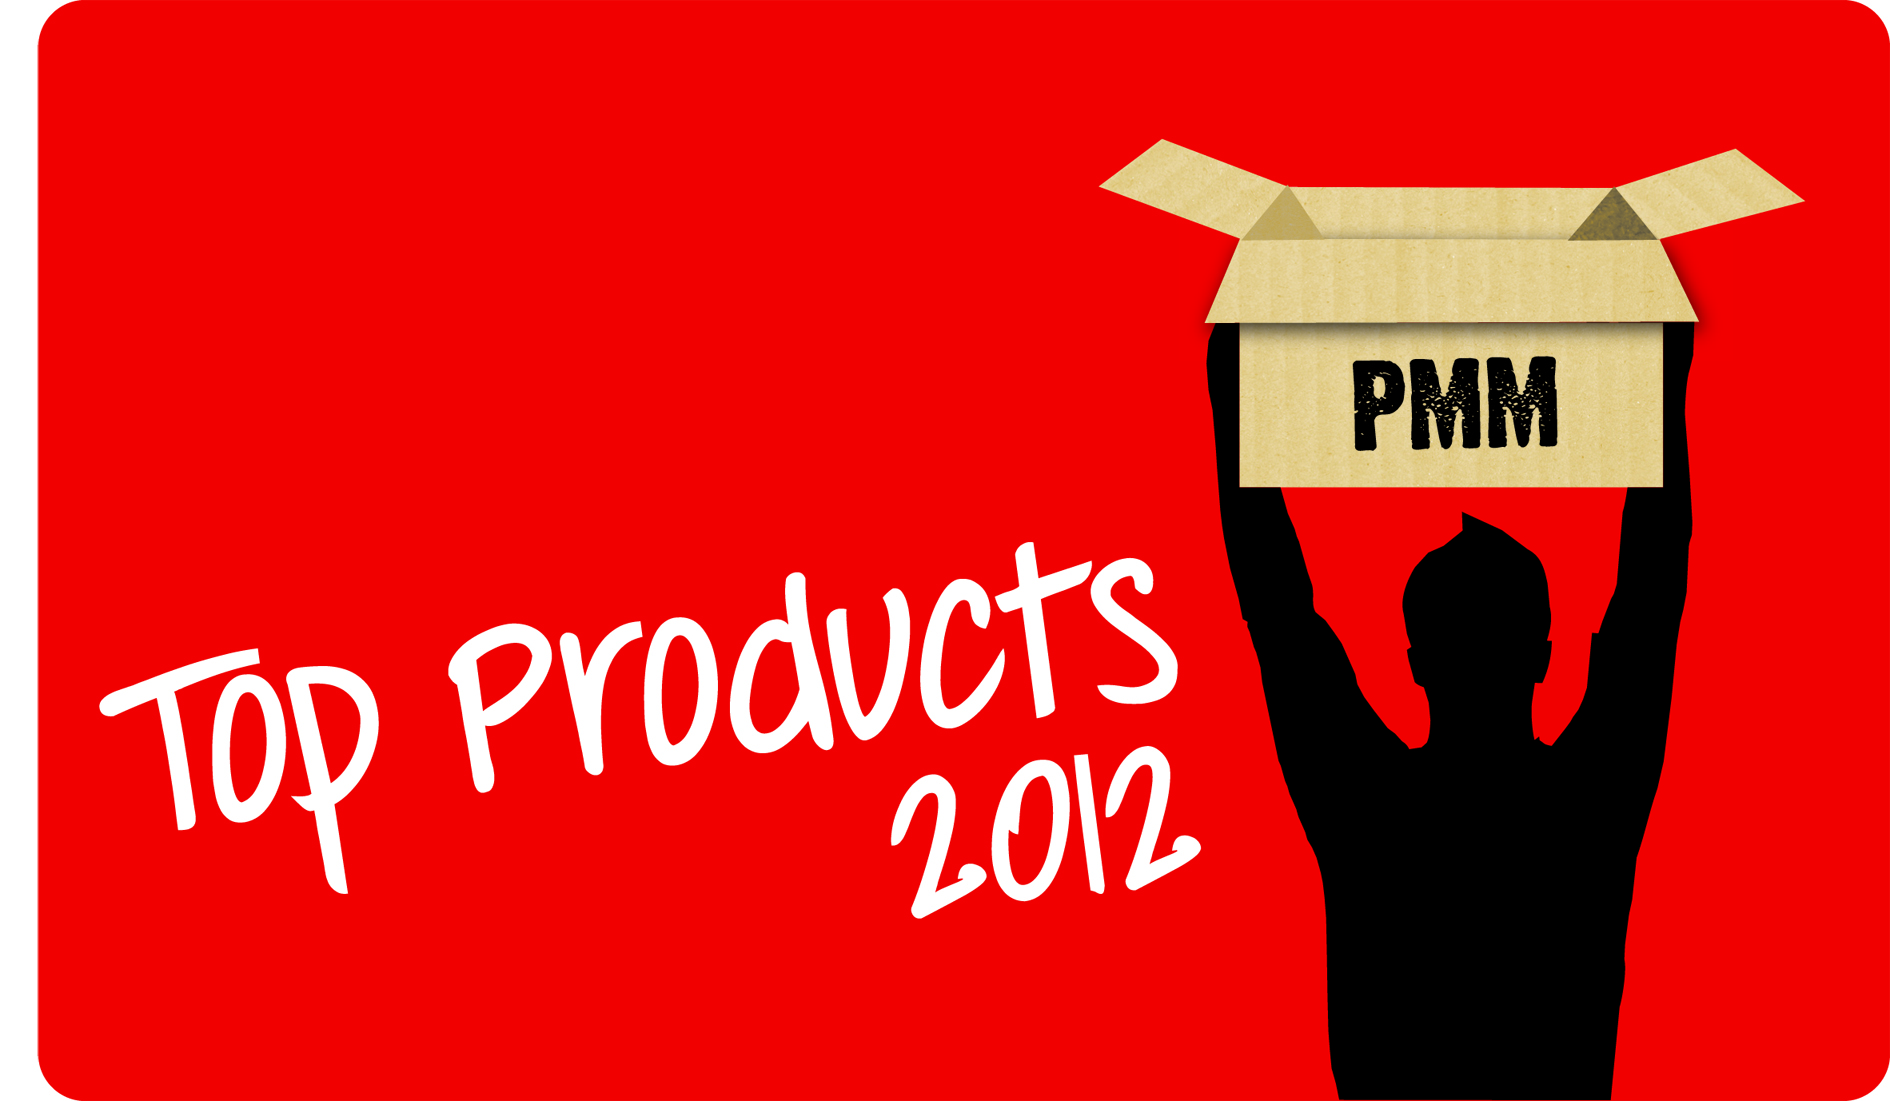 PMM Top Products 2012 - our innovation celebration